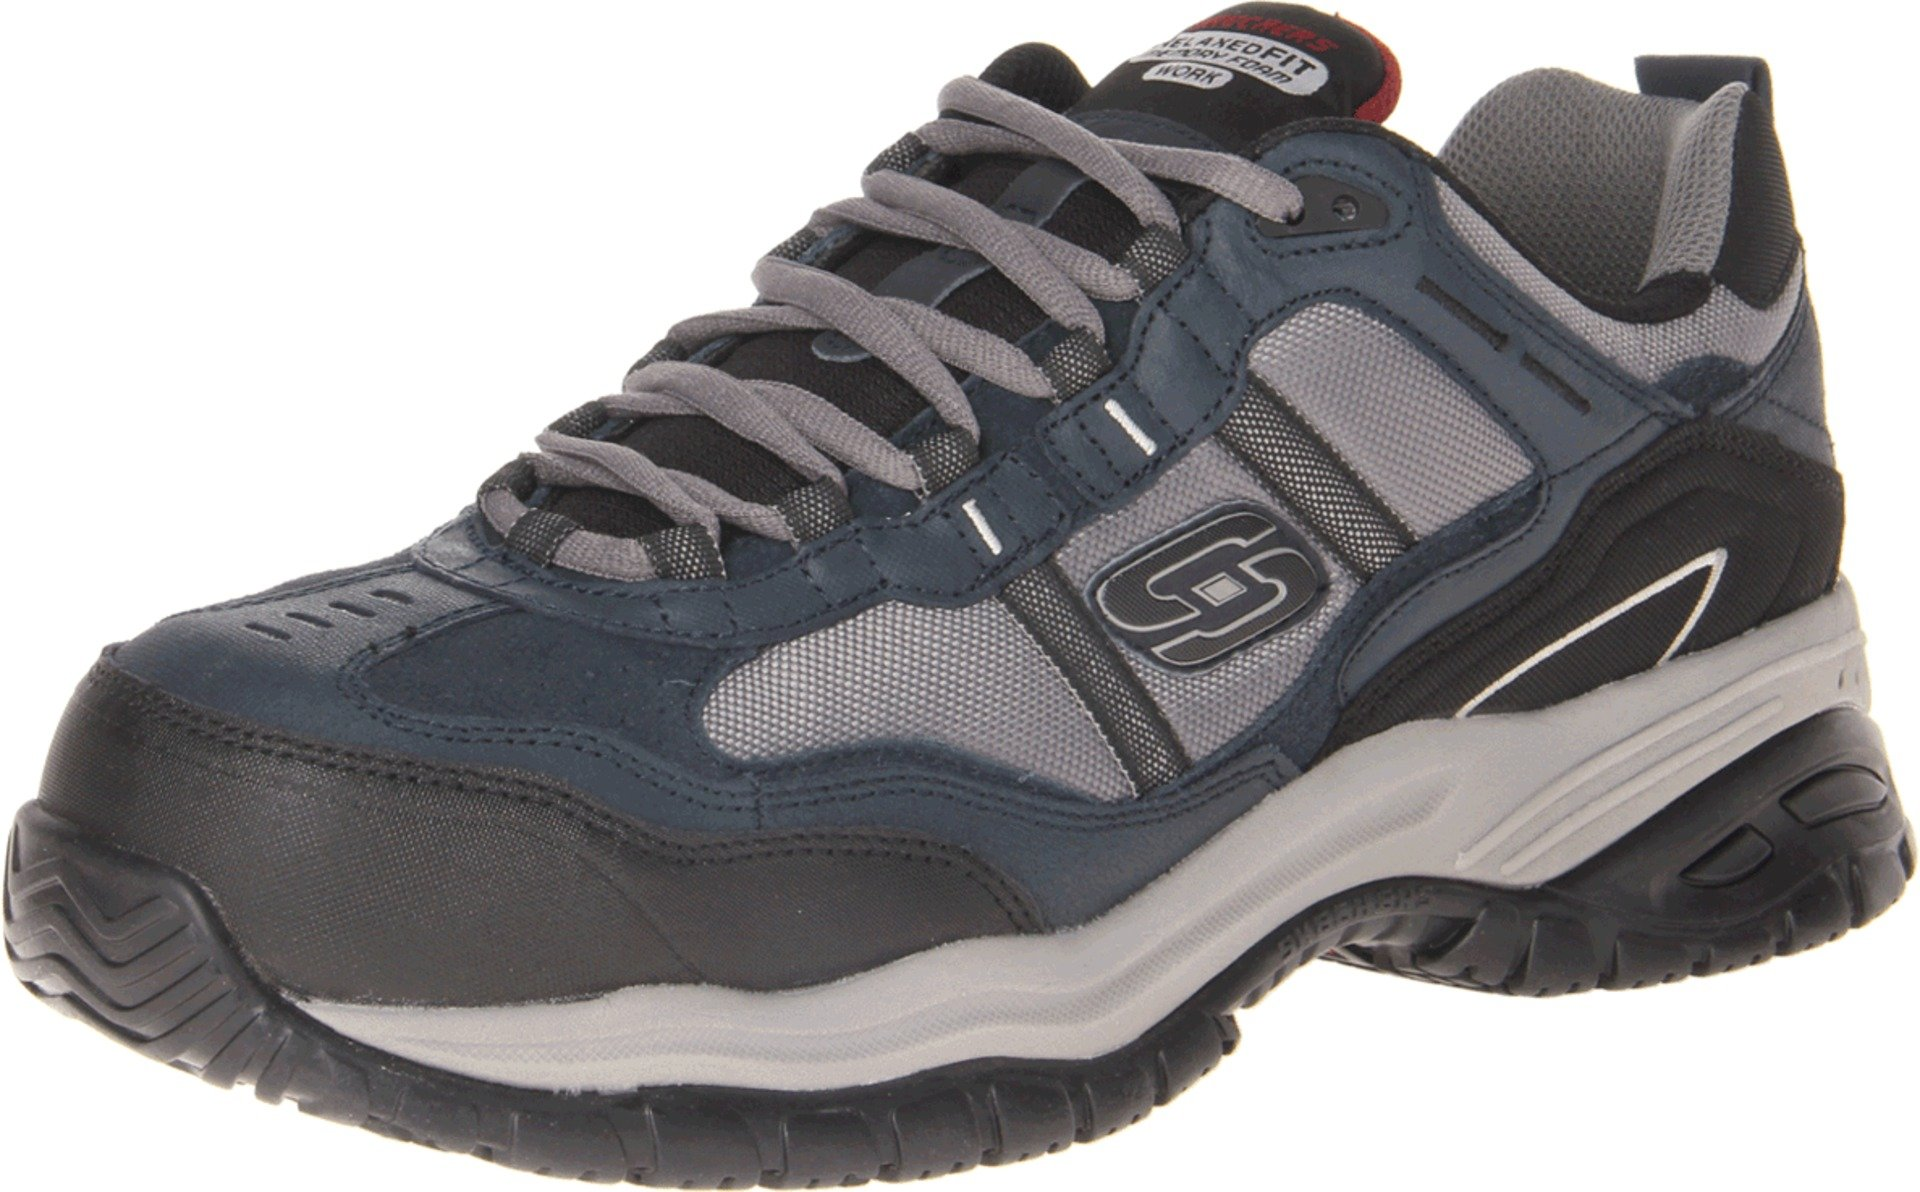 Skechers Men's Work Relaxed Fit Soft Stride Grinnel Comp, Navy/Gray - 10.5 D(M) US